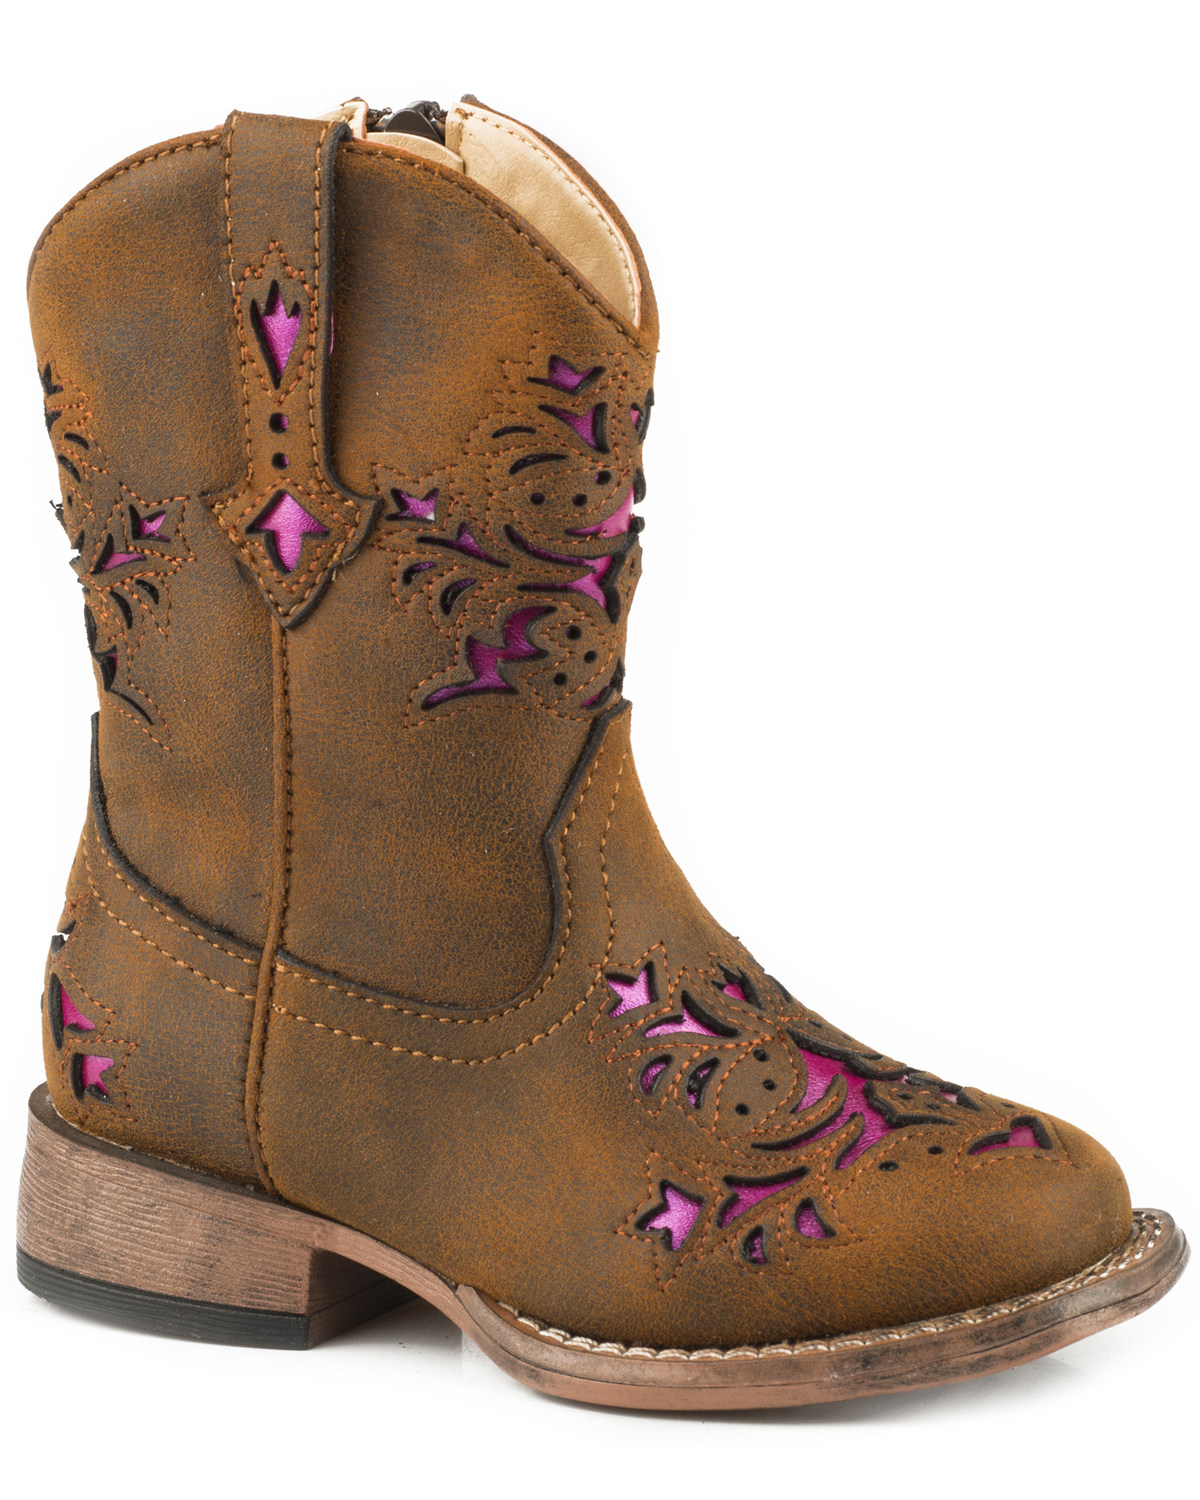 ad88f04972f Roper Toddler Girls' Lola Brown Metallic Underlay Cowgirl Boots - Square Toe